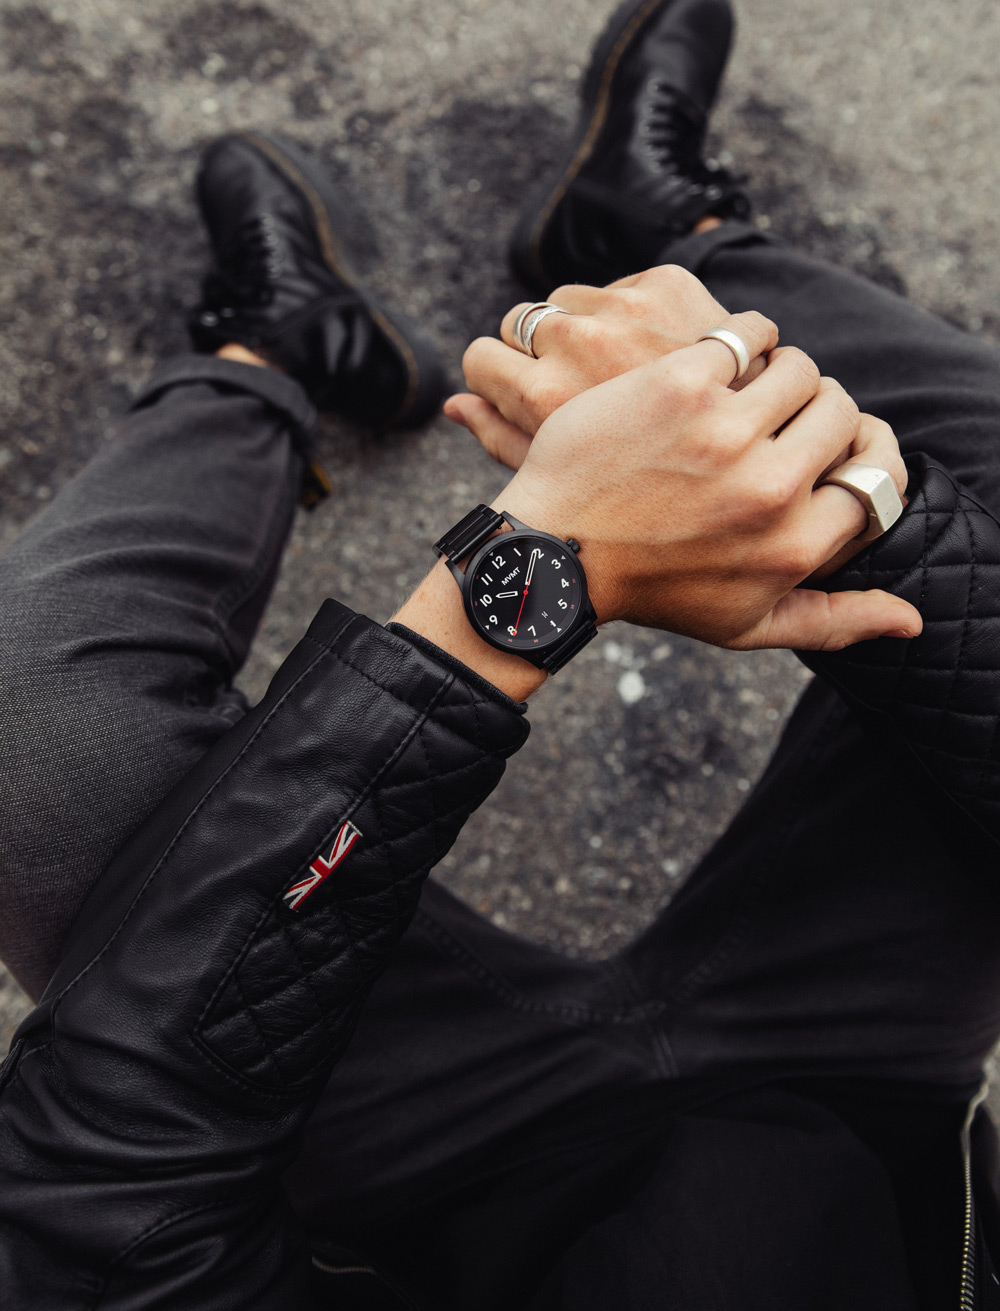 MVMT watches lifestyle imagery